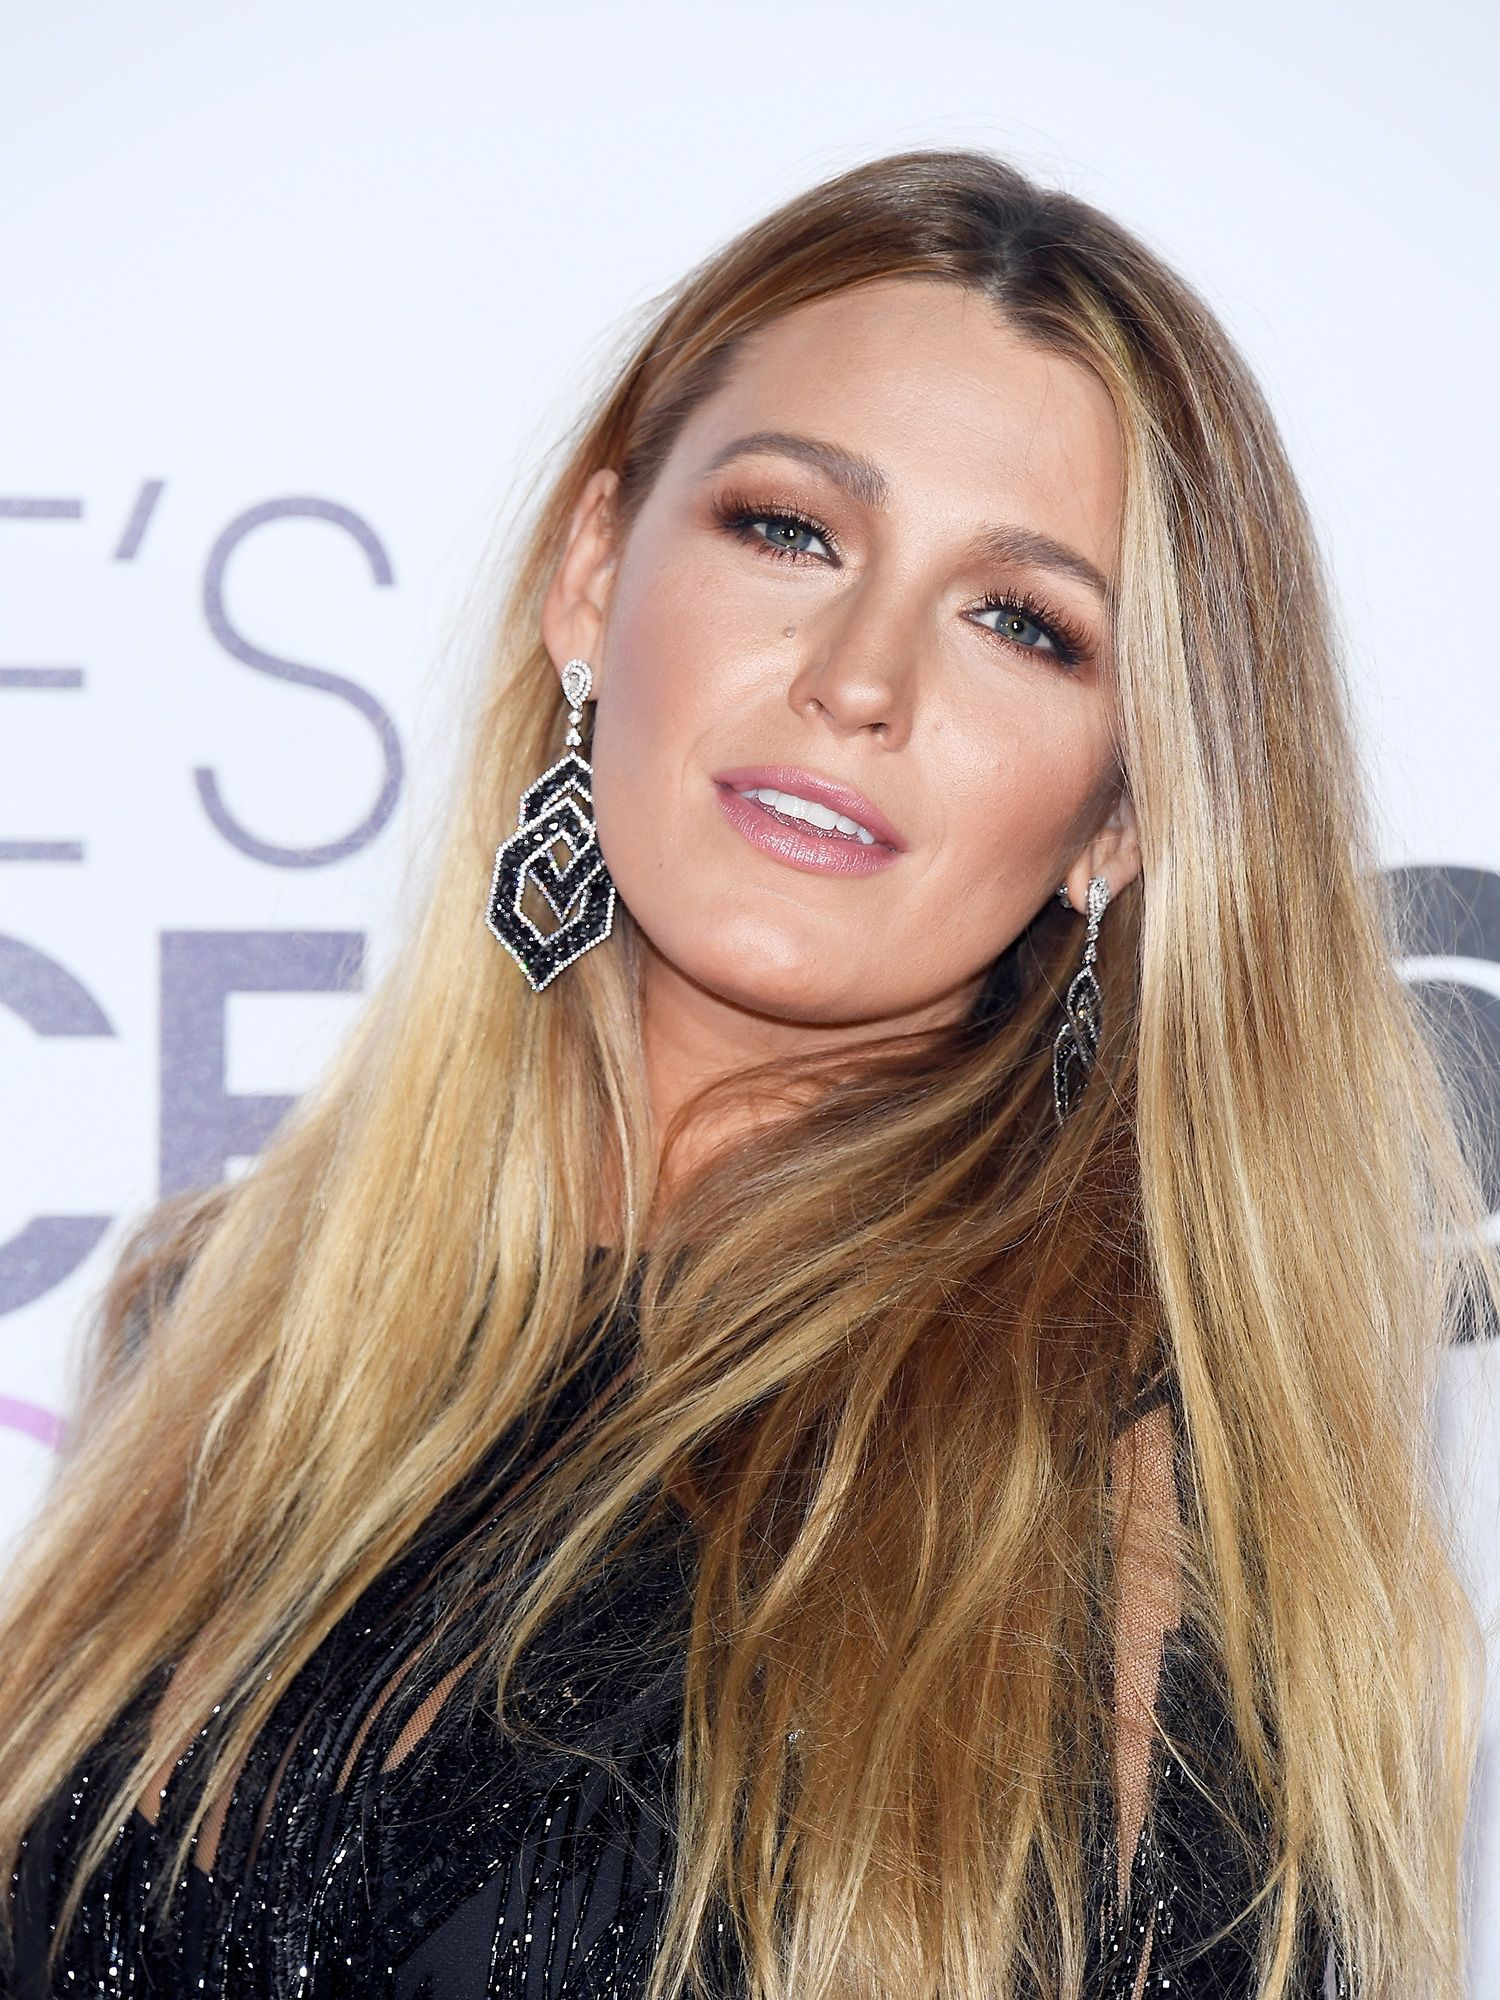 Lively Blake no makeup pictures exclusive photo